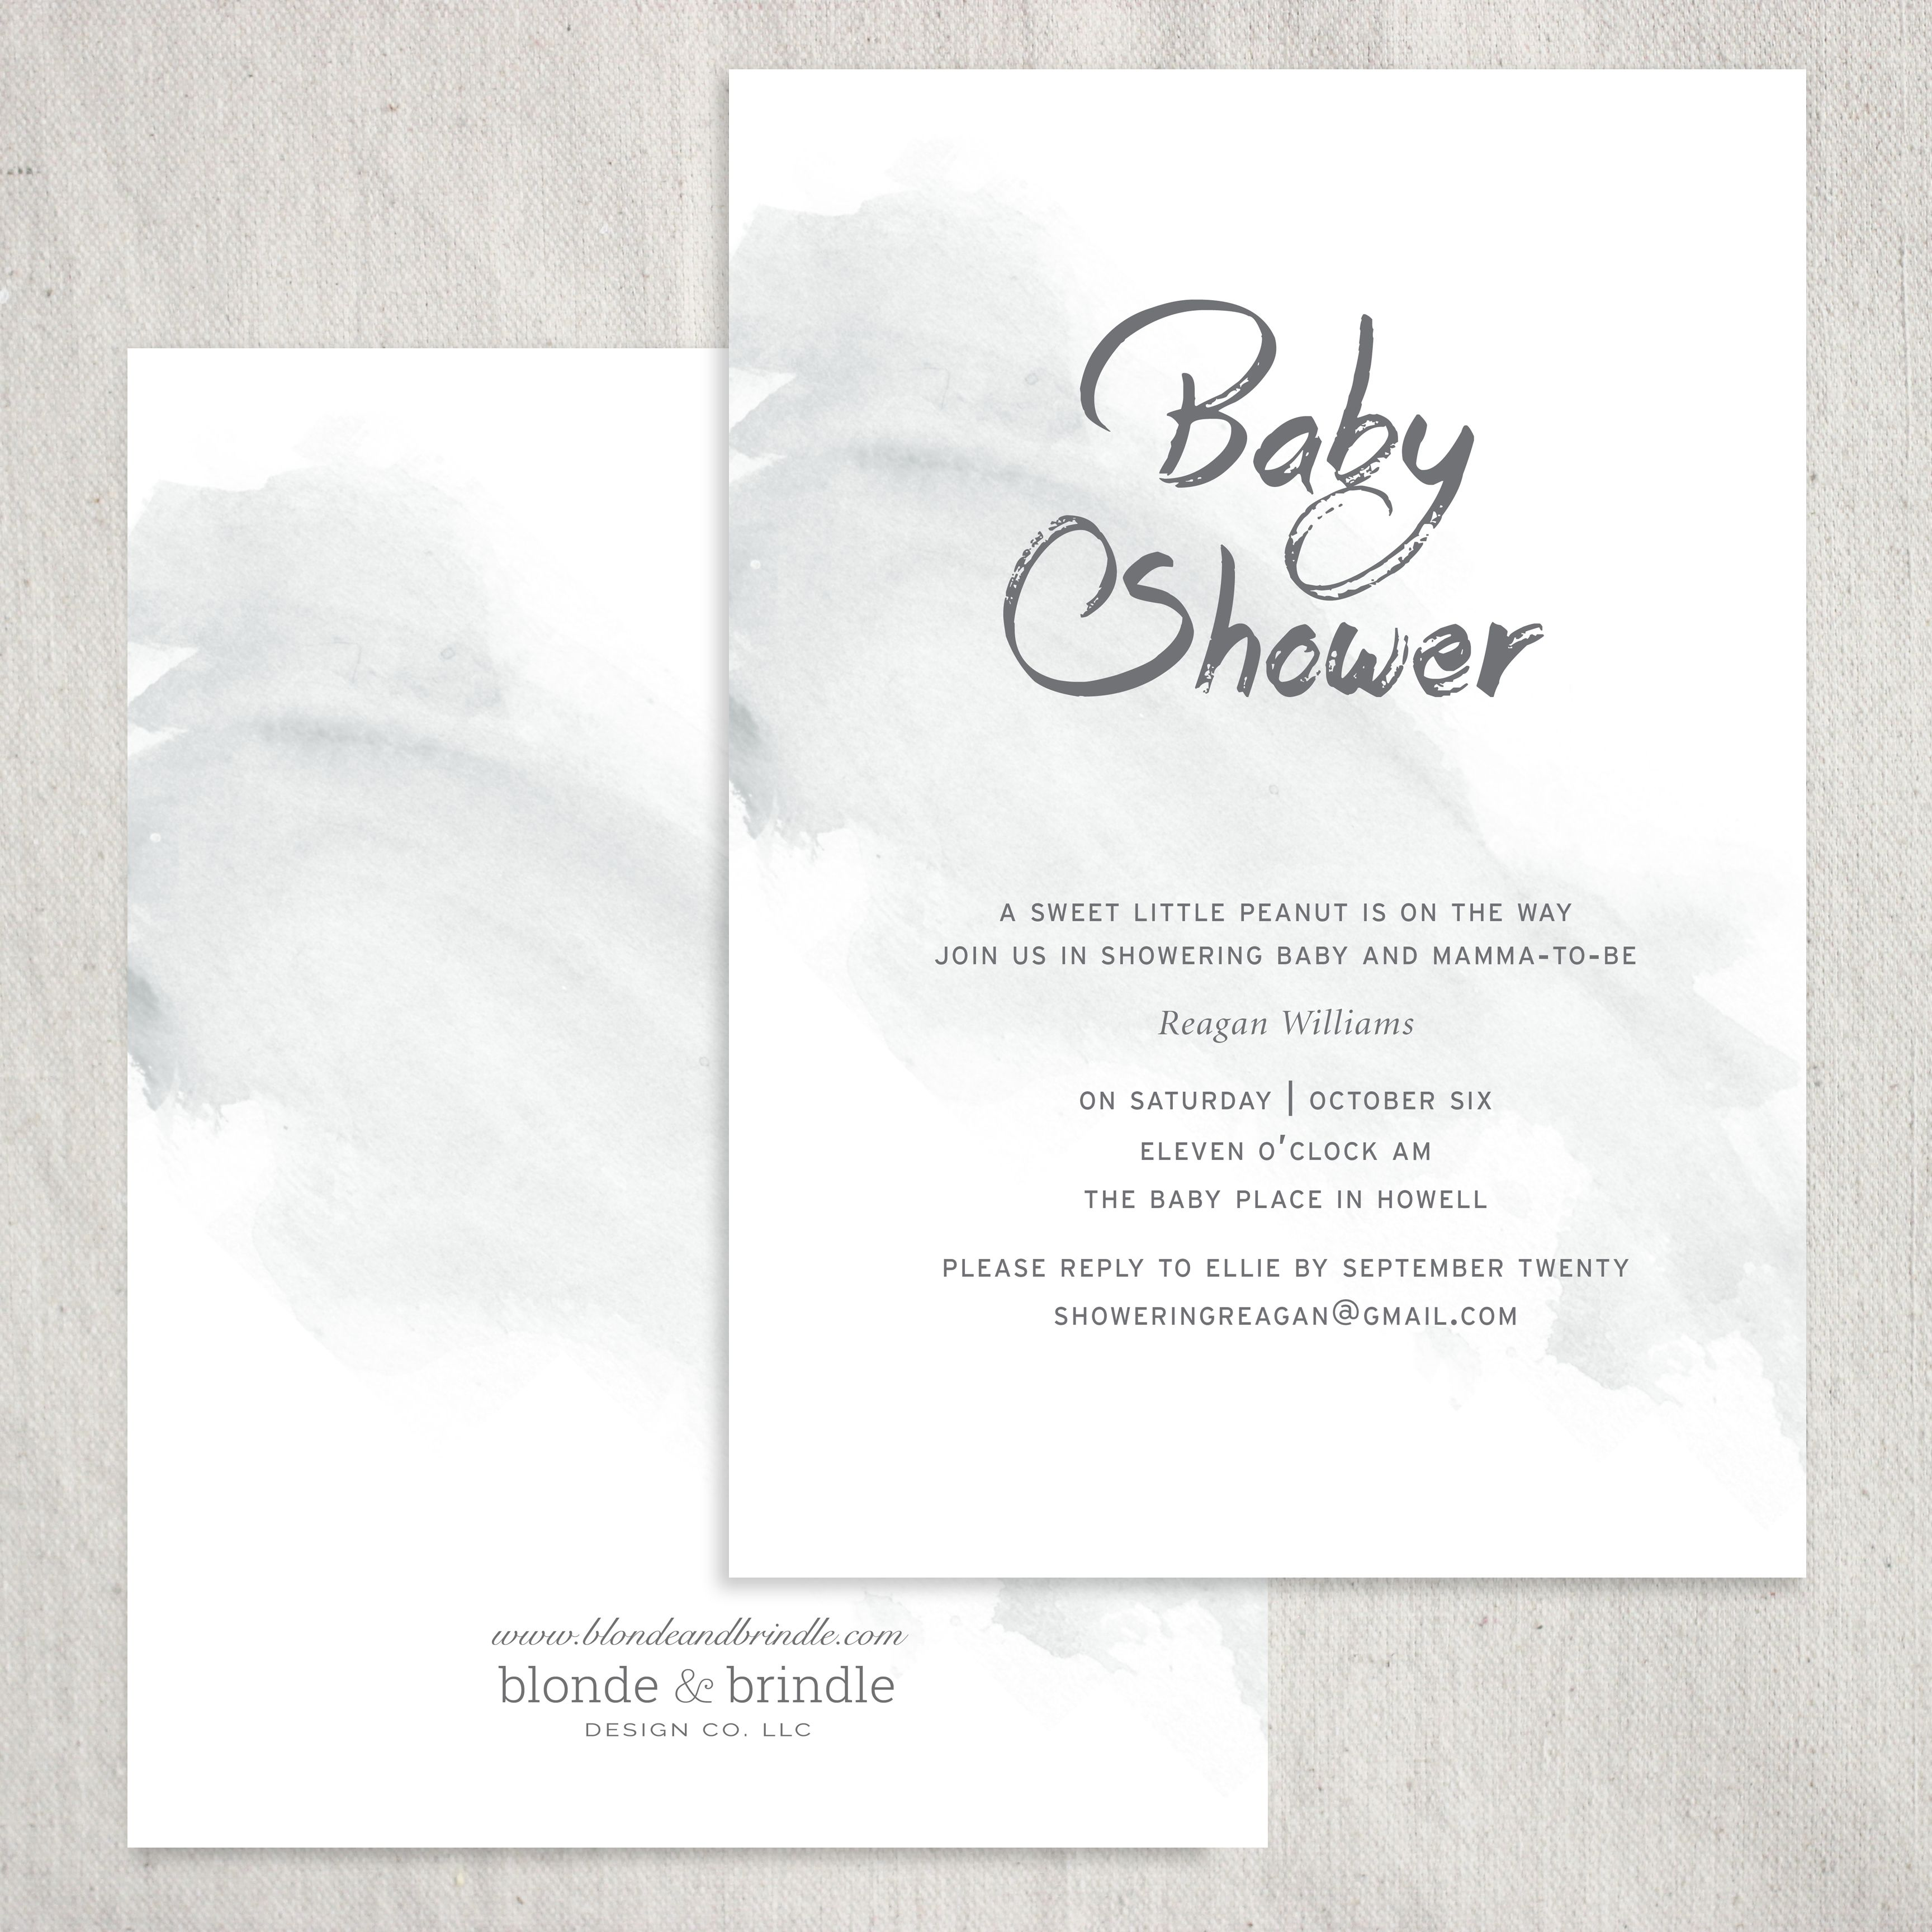 Gender neutral baby shower invitation. Featuring watercolor and ...